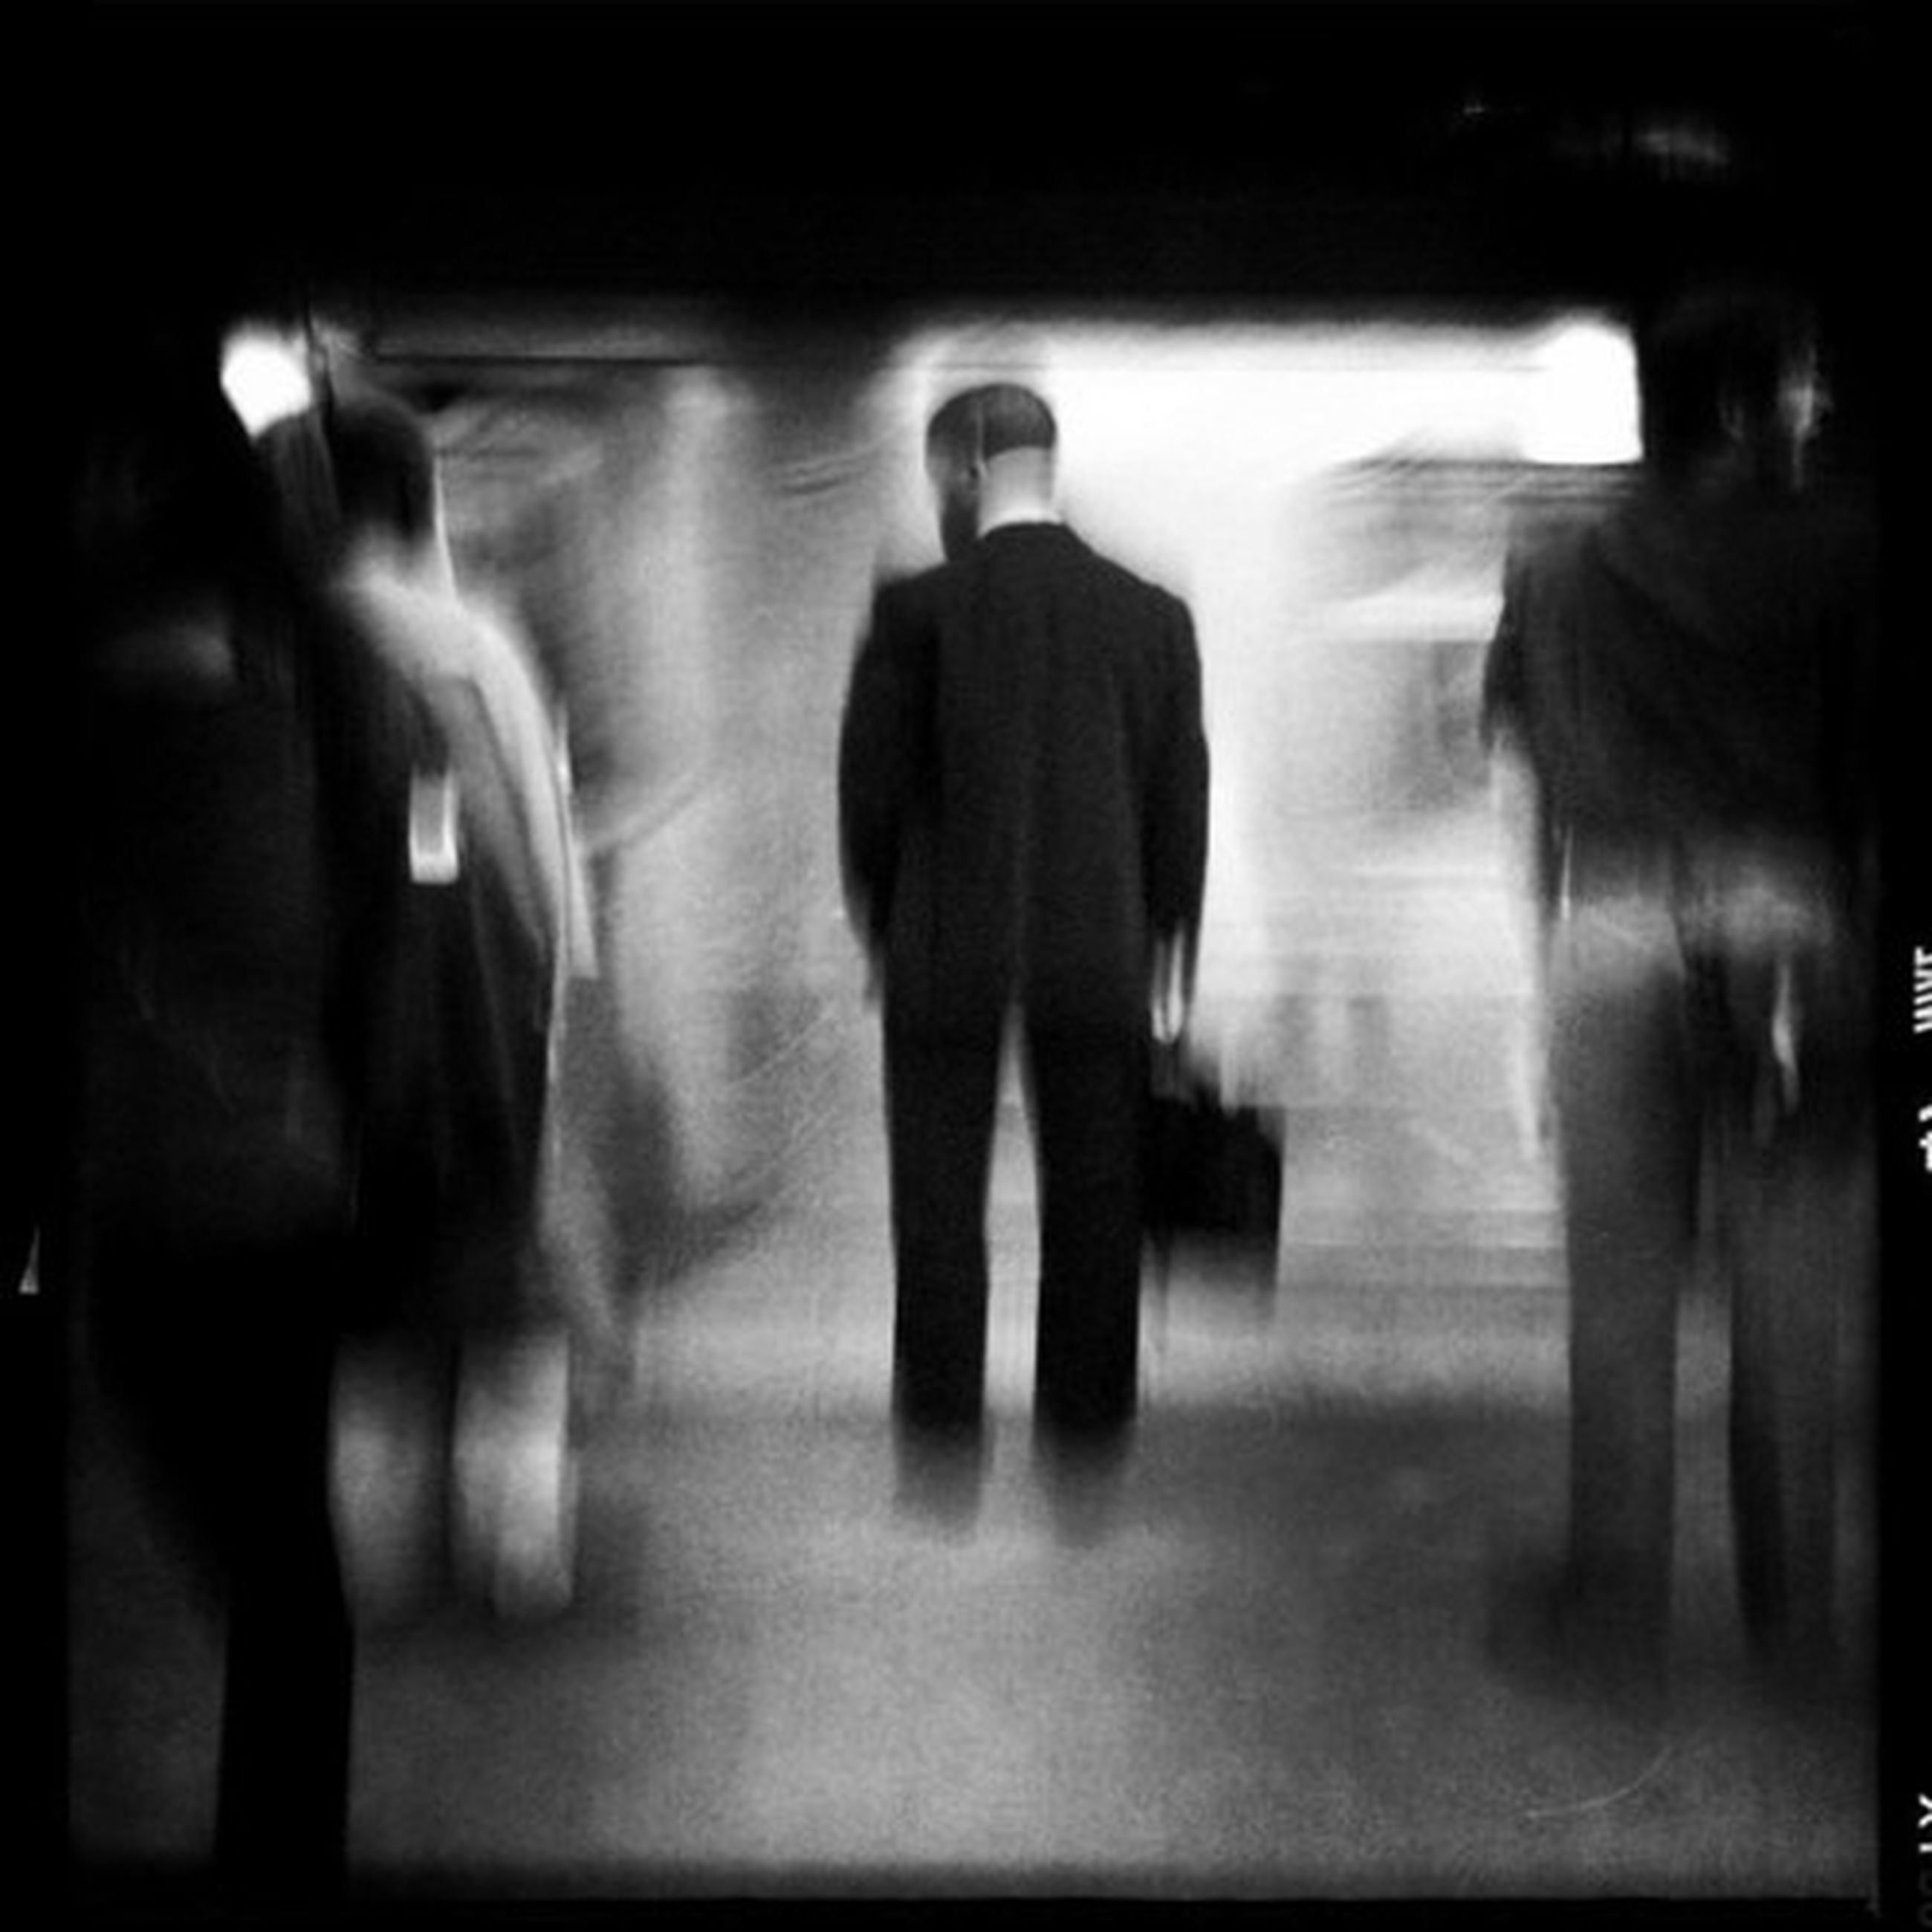 indoors, men, lifestyles, person, illuminated, walking, standing, blurred motion, night, rear view, leisure activity, silhouette, unrecognizable person, reflection, on the move, flooring, full length